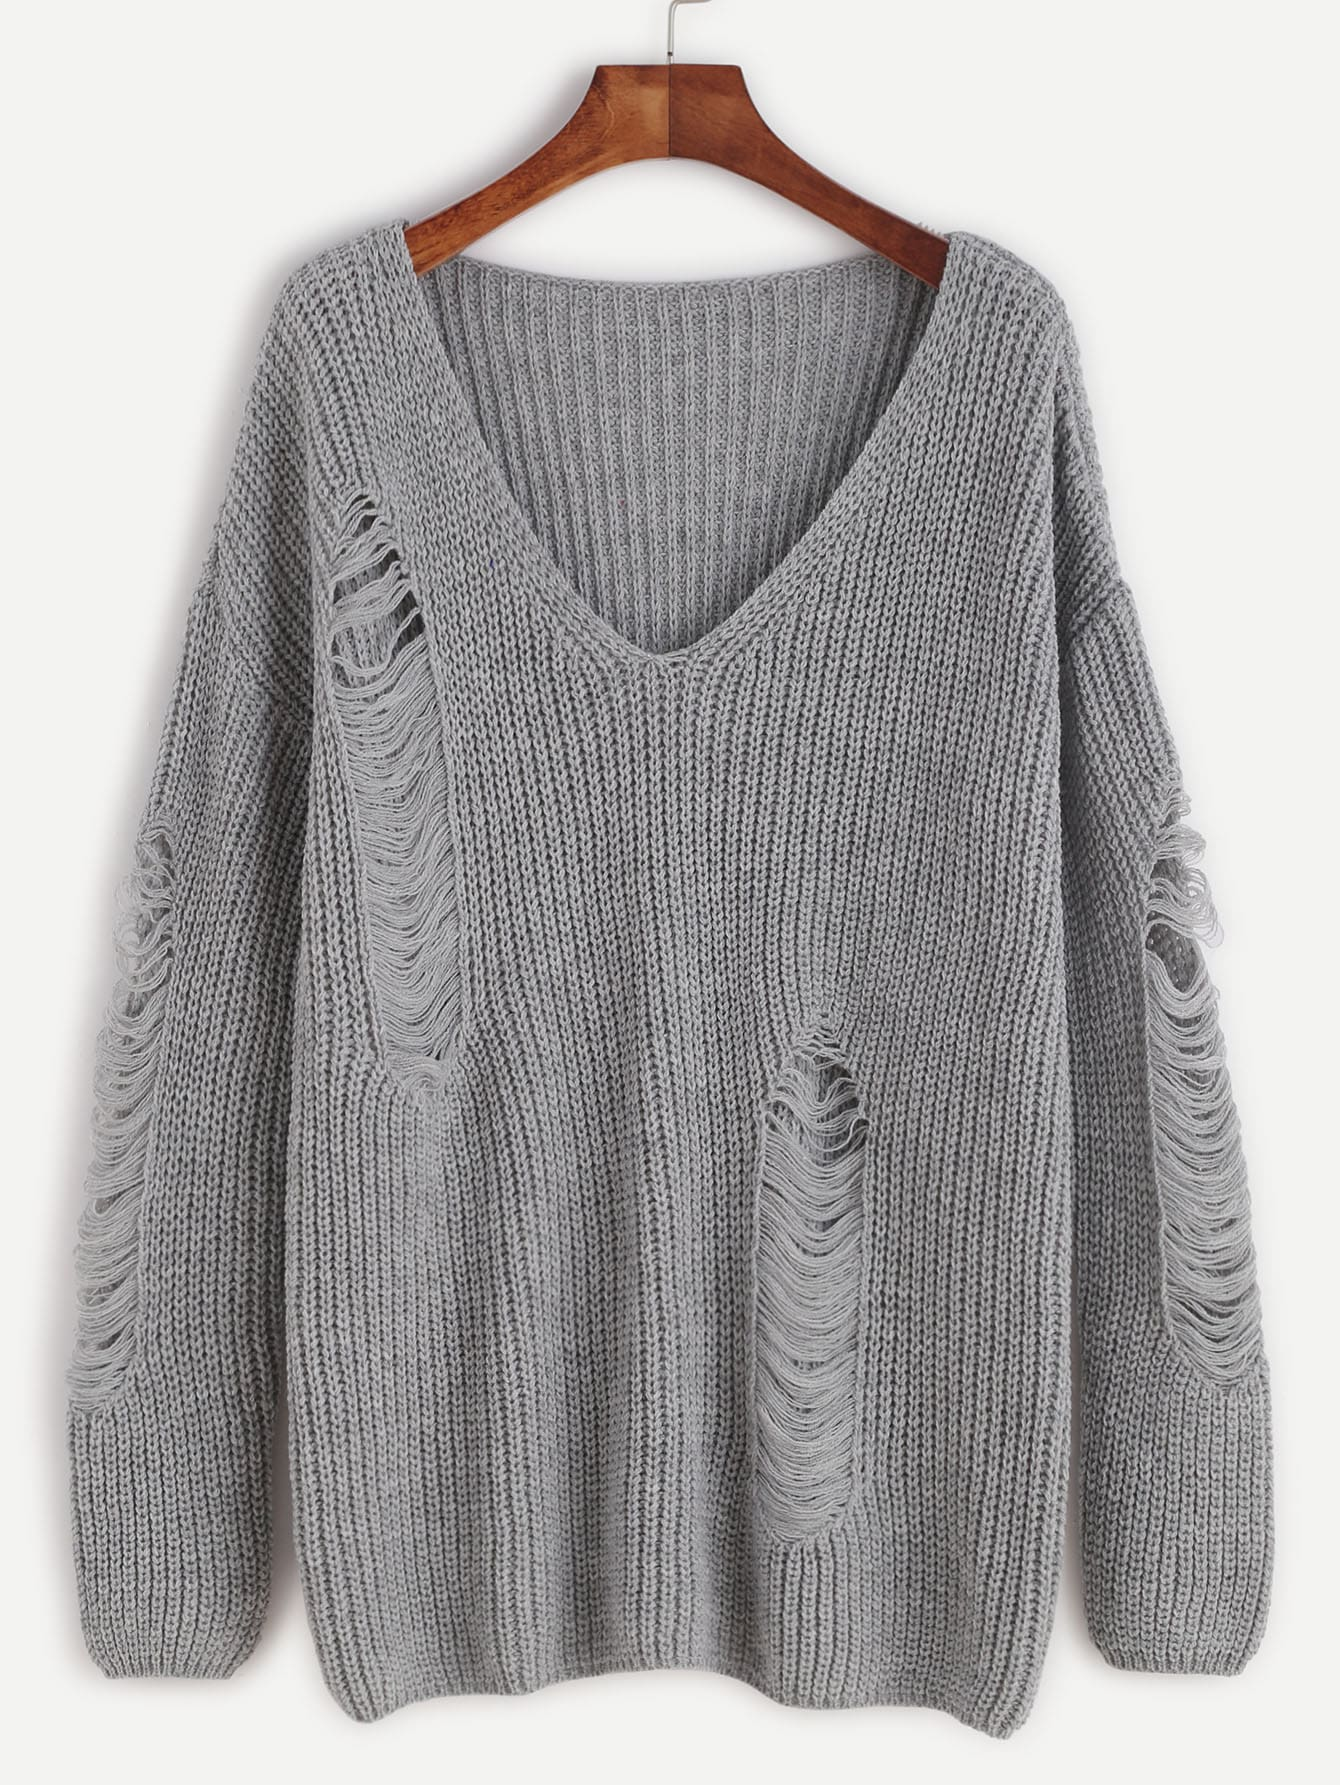 Grey V Neck Drop Shoulder Ripped Sweater sweater161020458